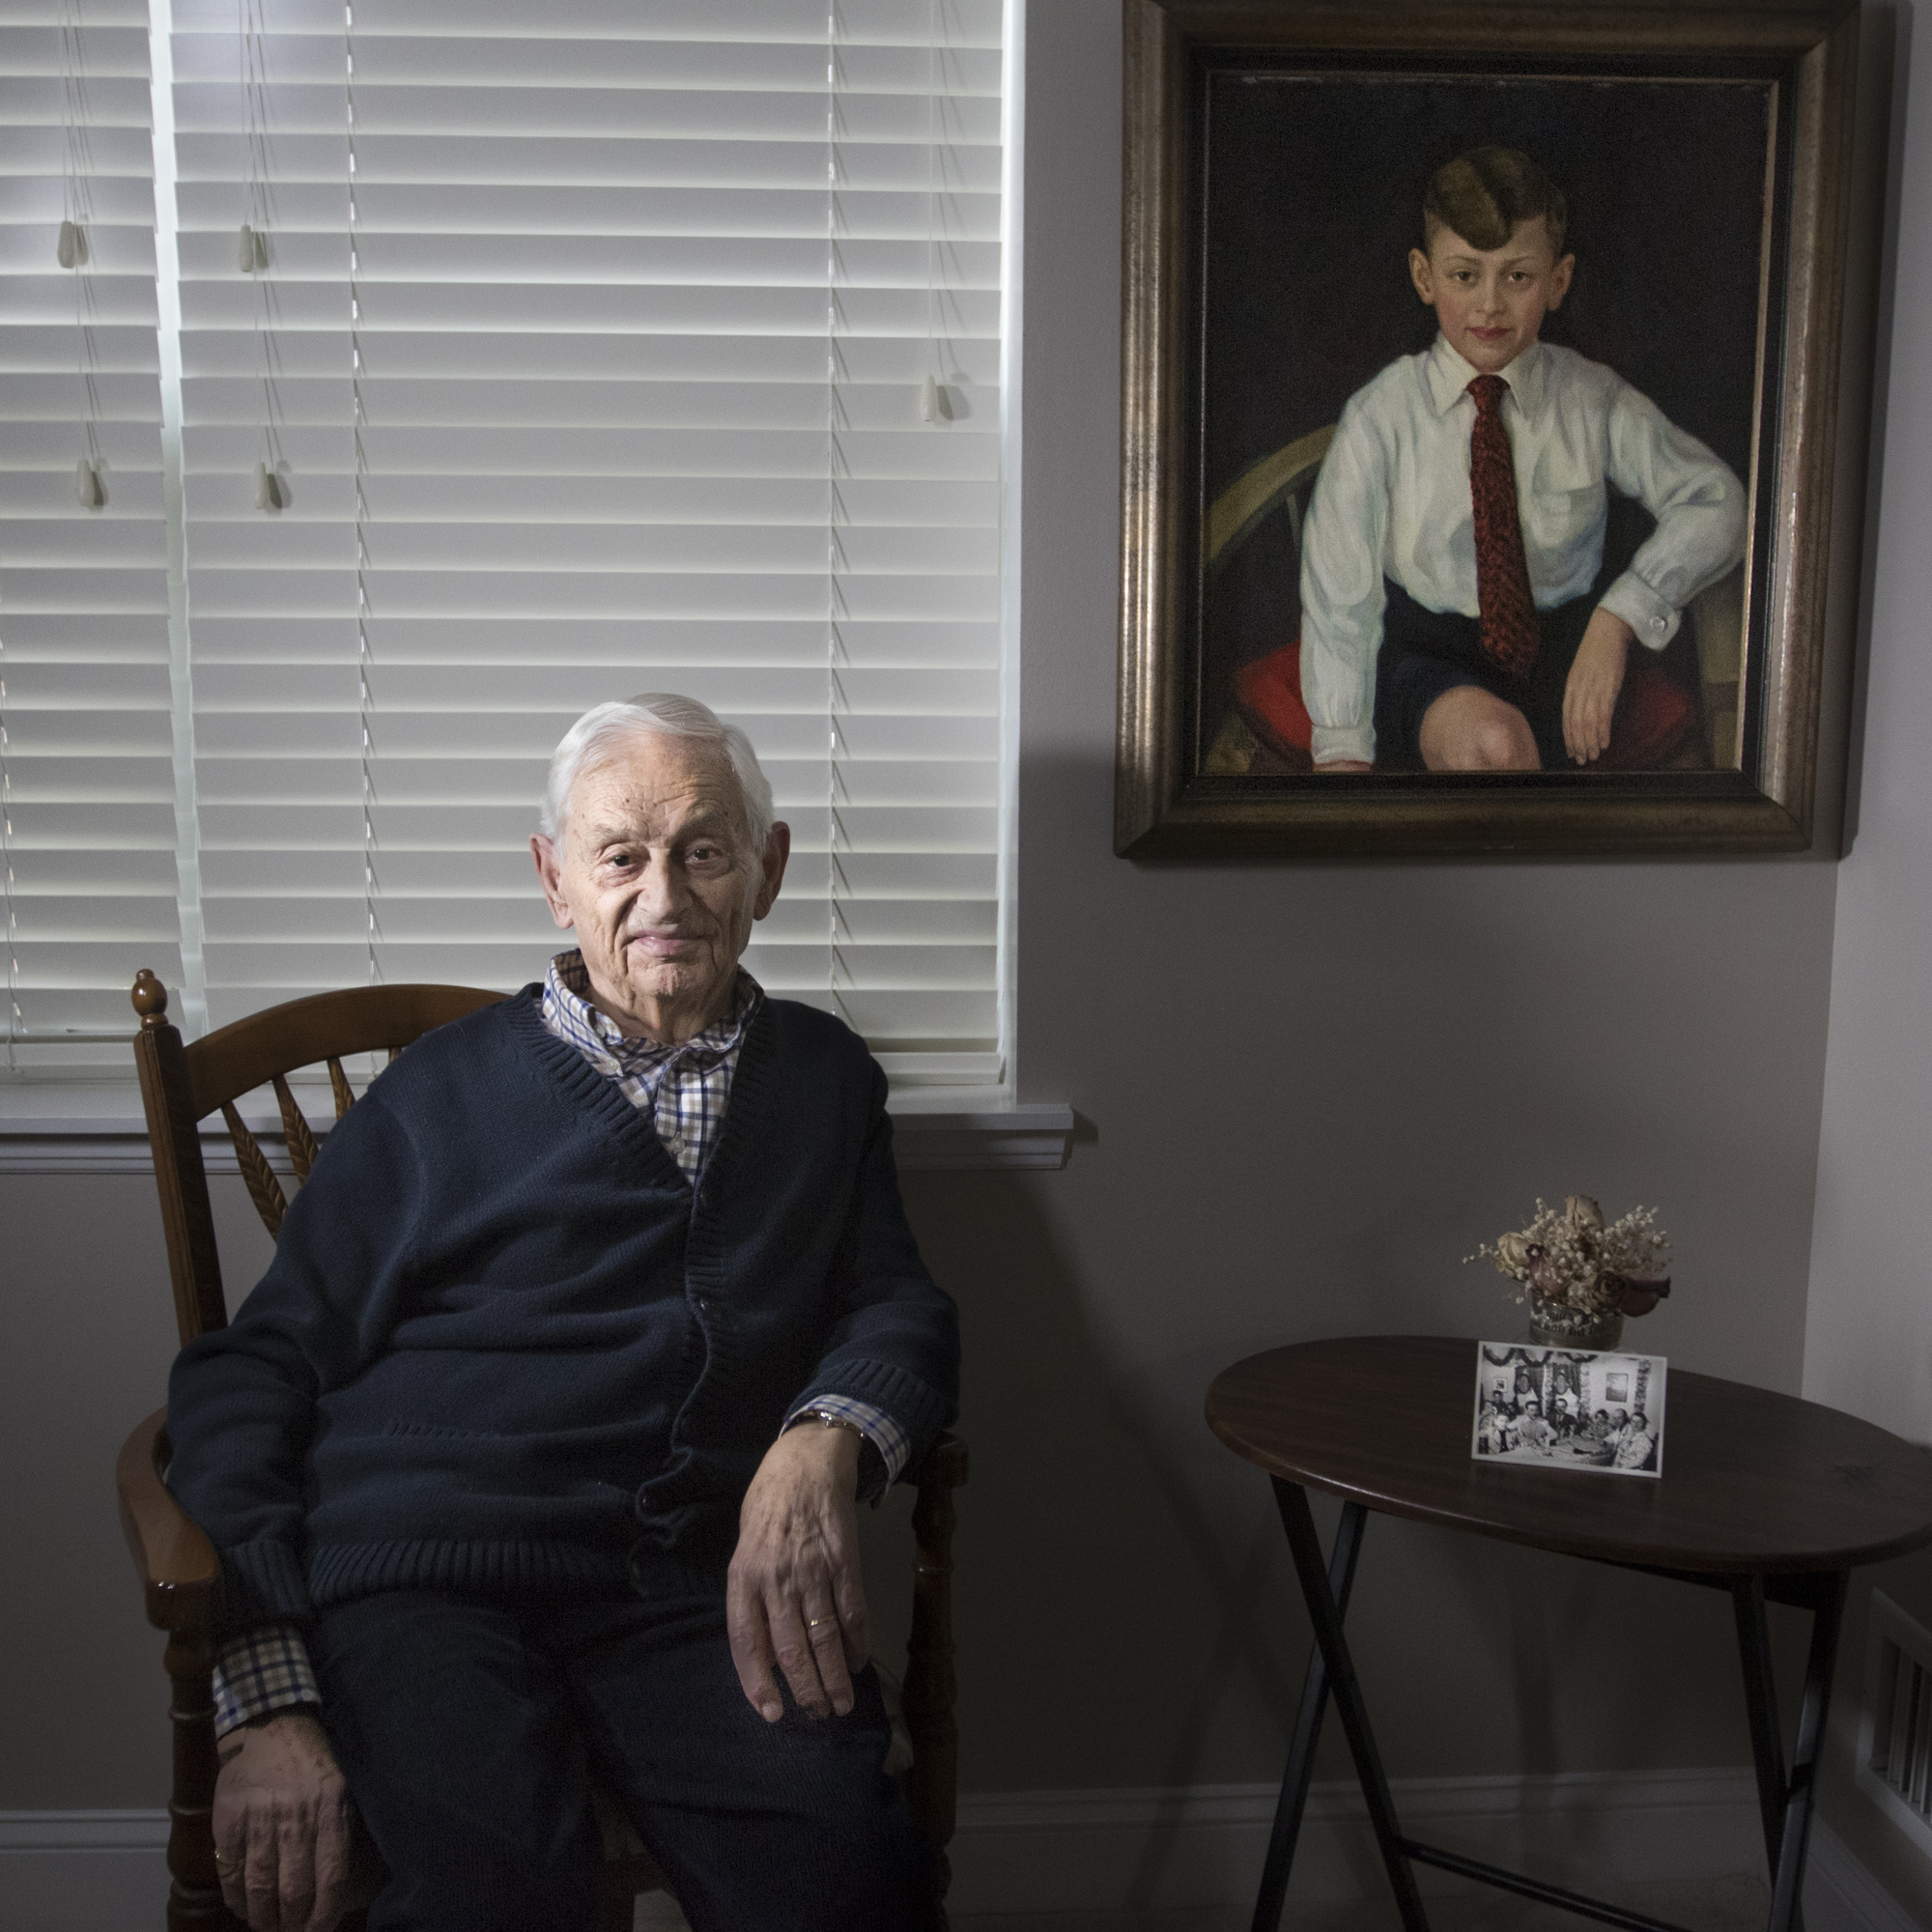 Egon Salmon poses next to a painting of him which was made in Rheydt, Germany in 1933, when Salmon was 9 years old. The portrait traveled with him on the S.S. St. Louis, to Belgium, and eventually to the United States in 1940. The small photo leaning against the flowers pictures him with his mother, sister, and other passangers at his table on the St. Louis ship. Shortly after his arrival to the United States, he settled with his family on Staten Island and was drafted to fight overseas in the American Army.